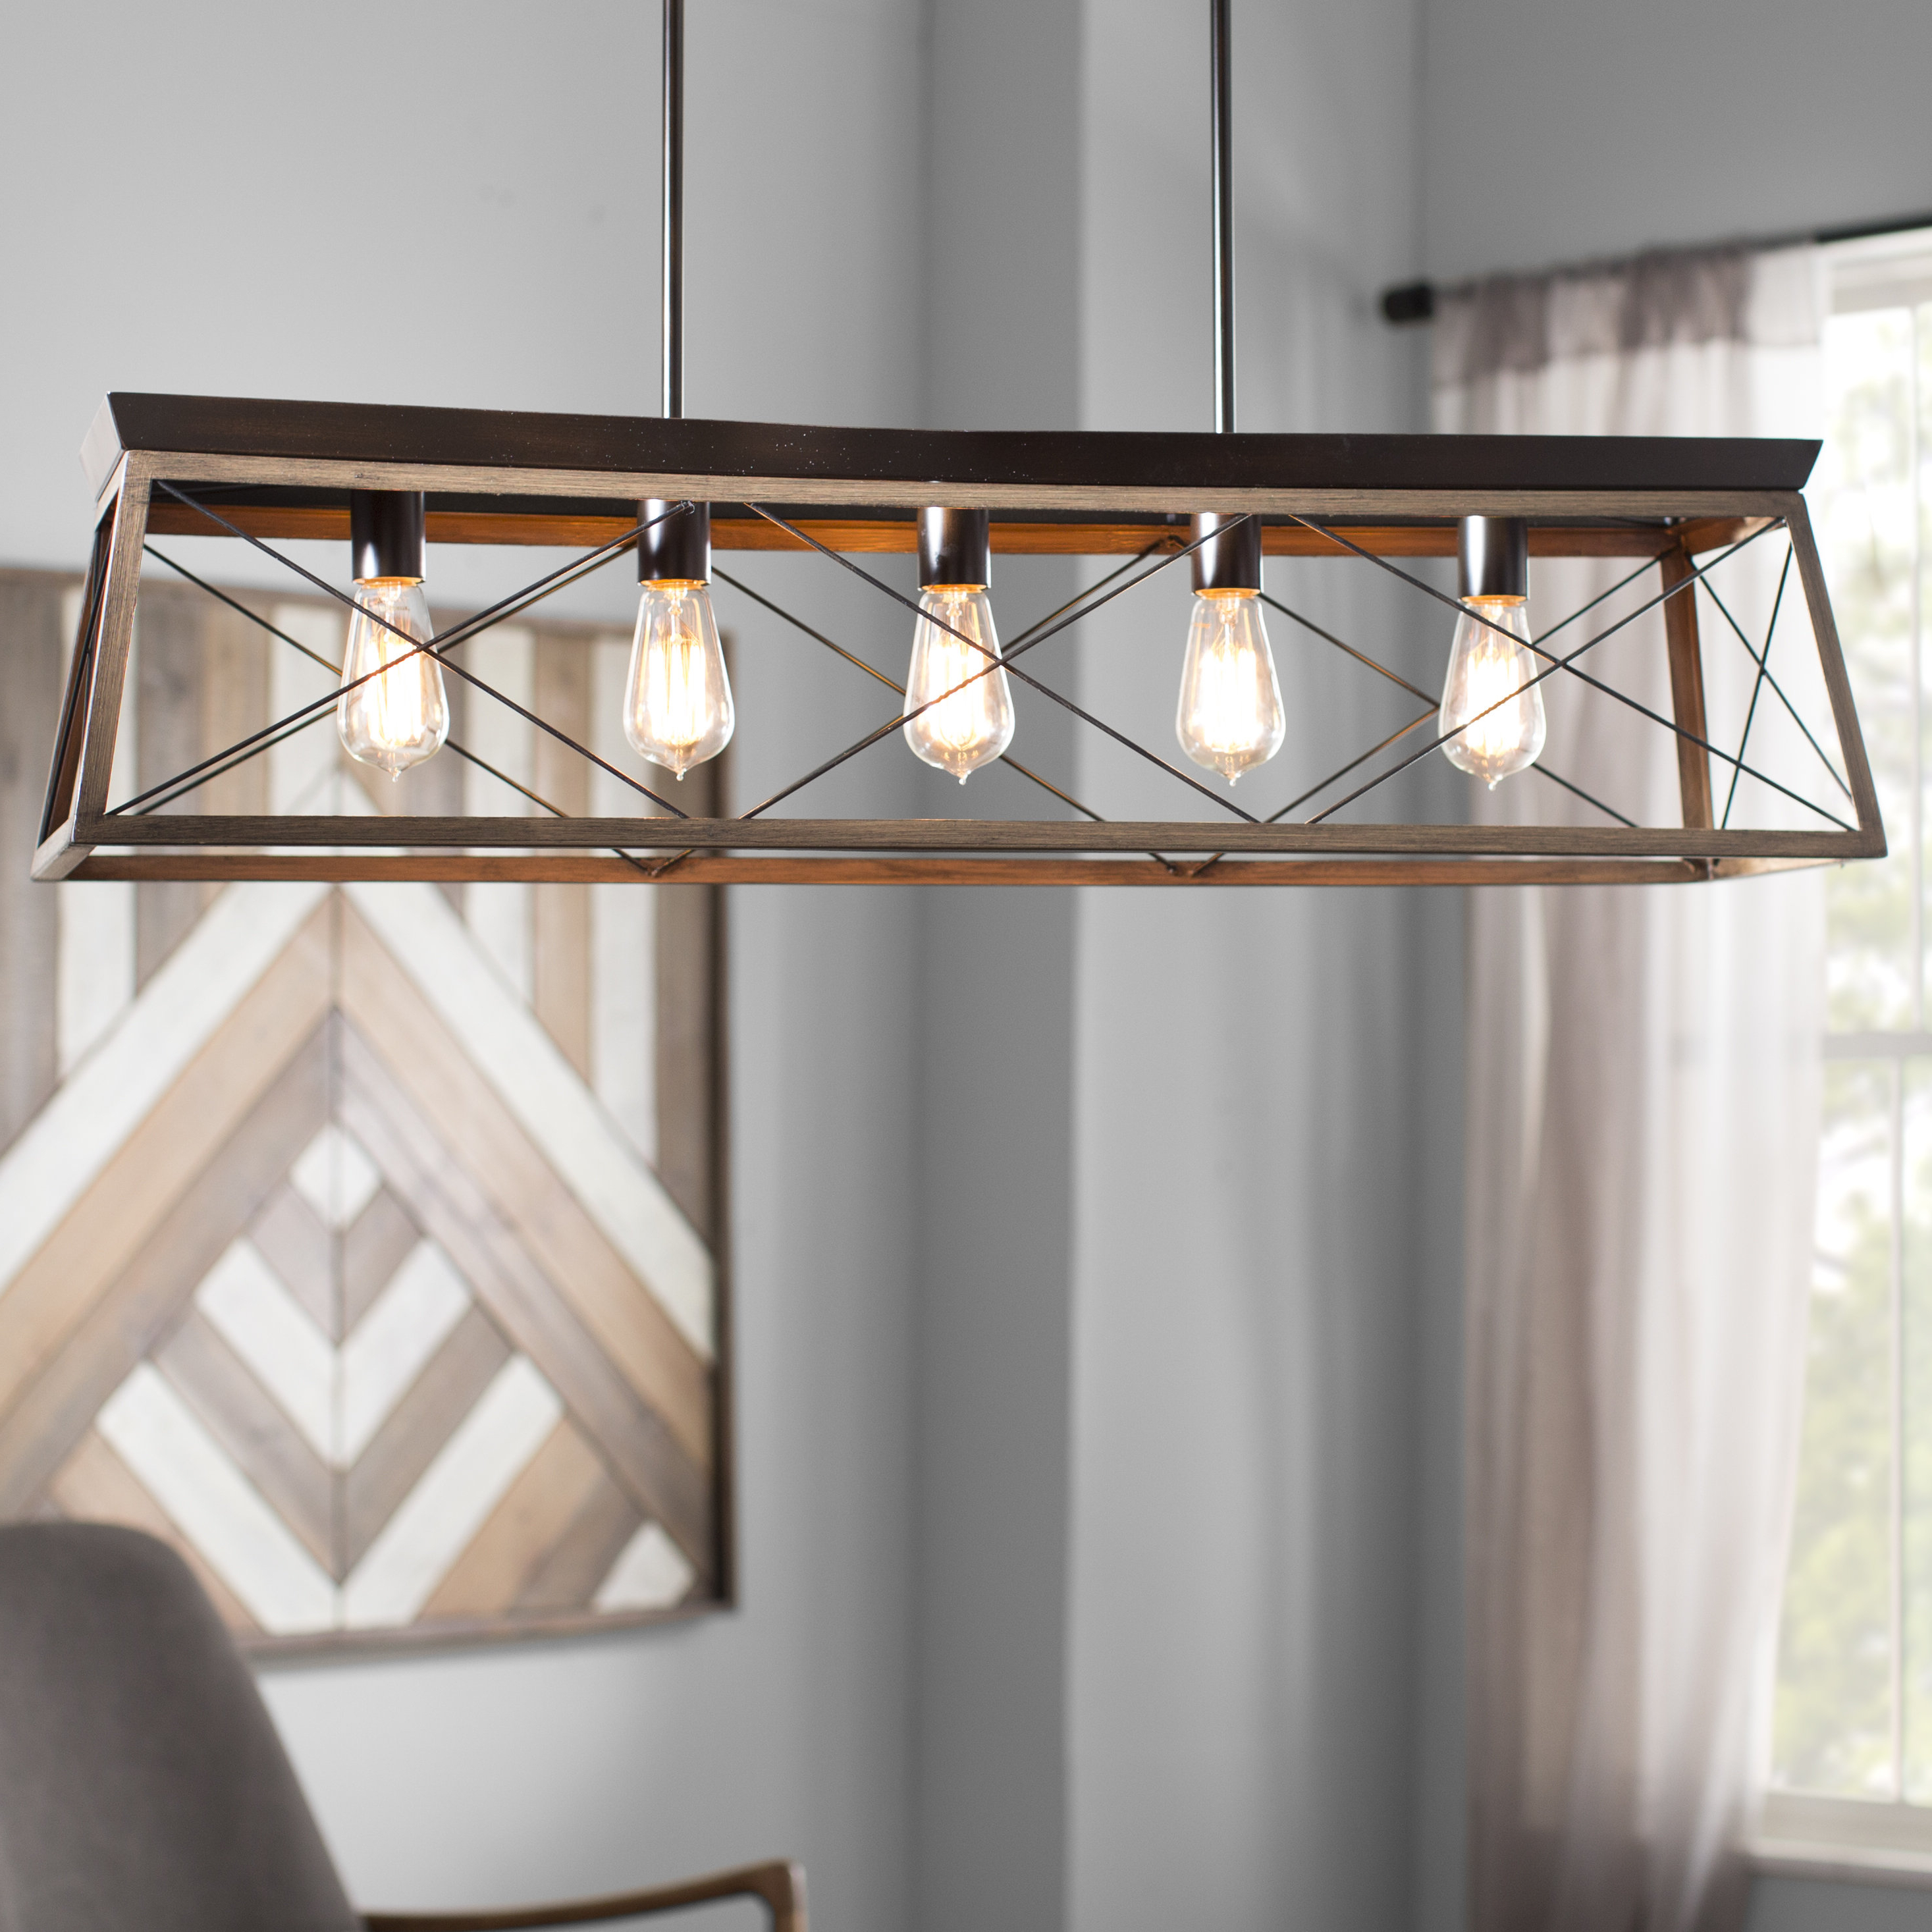 Laurel Foundry Modern Farmhouse Delon 5 Light Kitchen Island Regarding 2020 Hinerman 5 Light Kitchen Island Pendants (View 5 of 25)